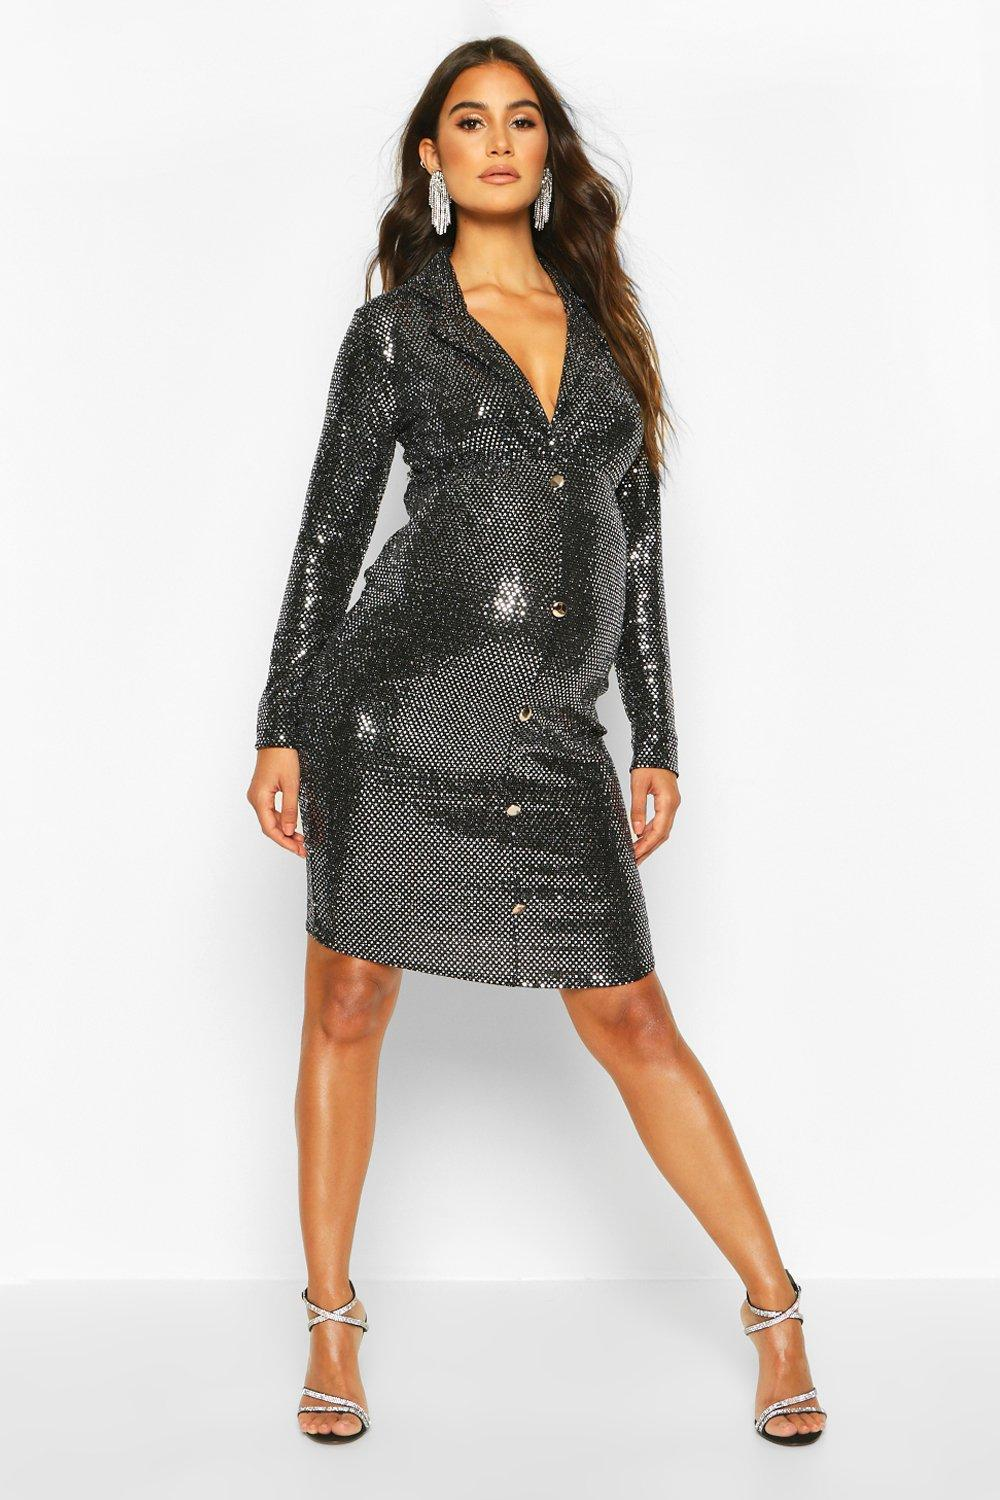 Vintage Maternity Clothes History Womens Maternity Stretch Sequin Blazer Dress - grey - 12 $18.00 AT vintagedancer.com